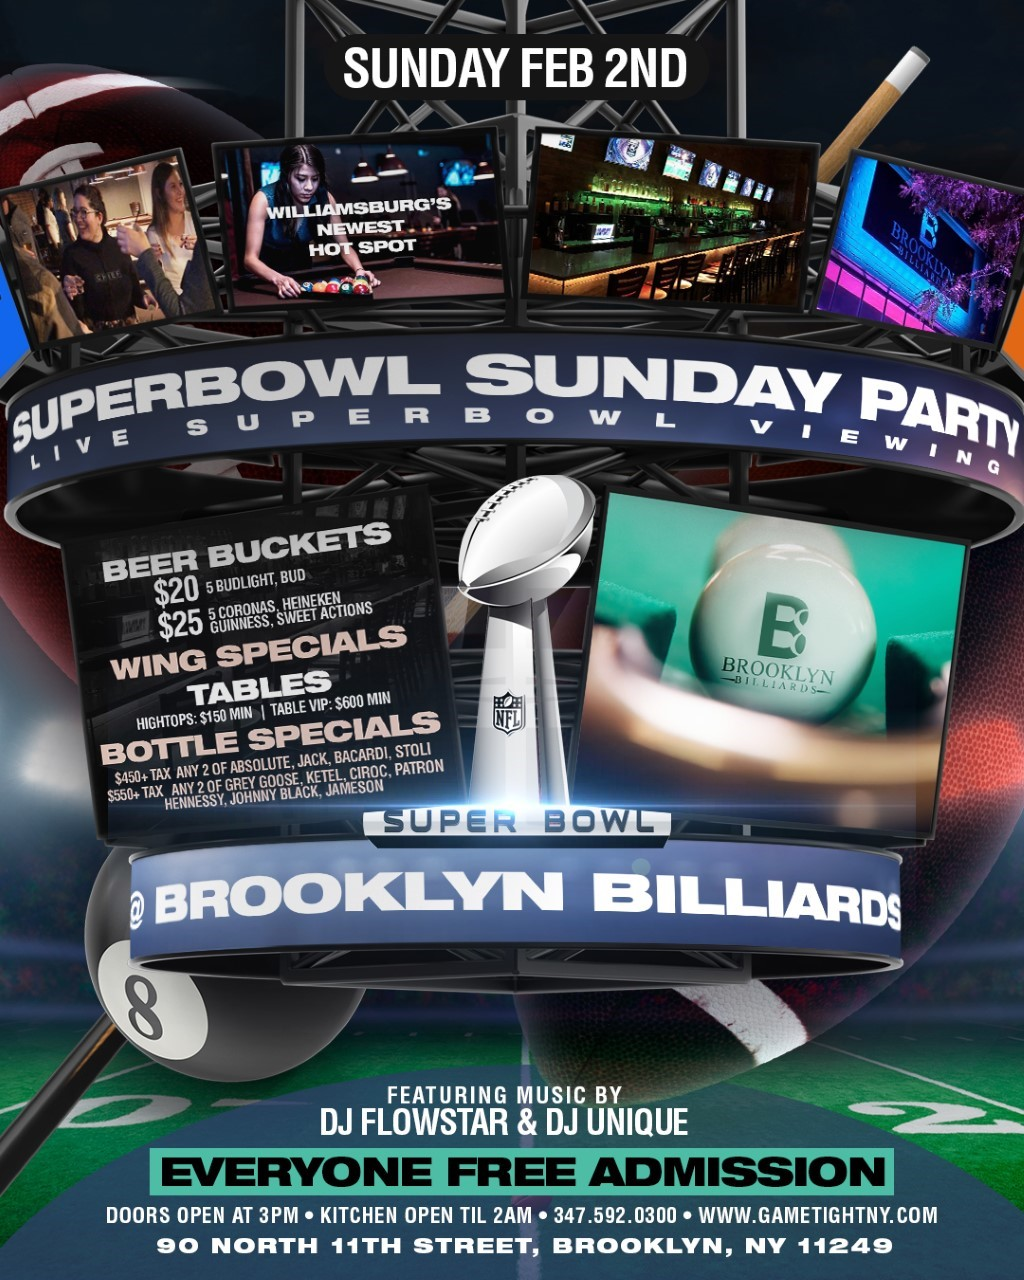 Brooklyn Billiards Superbowl Sunday Viewing party 2020 Brooklyn Billiards Superbowl Sunday Viewing party 2020 on Feb 02, 15:00@Brooklyn Billiards - Buy tickets and Get information on GametightNY